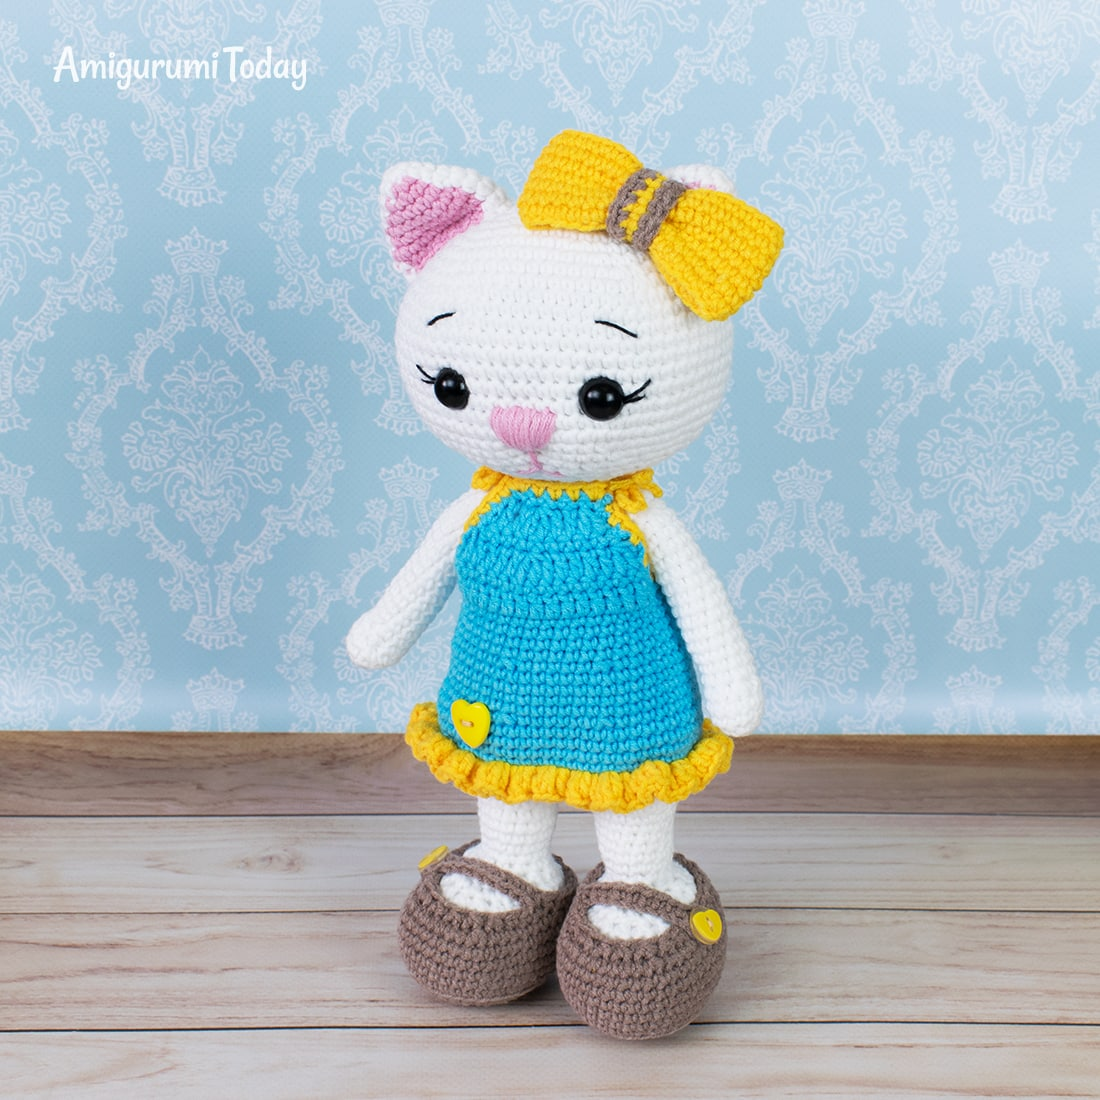 Amigurumi cat doll in sundress crochet pattern by Amigurumi Today